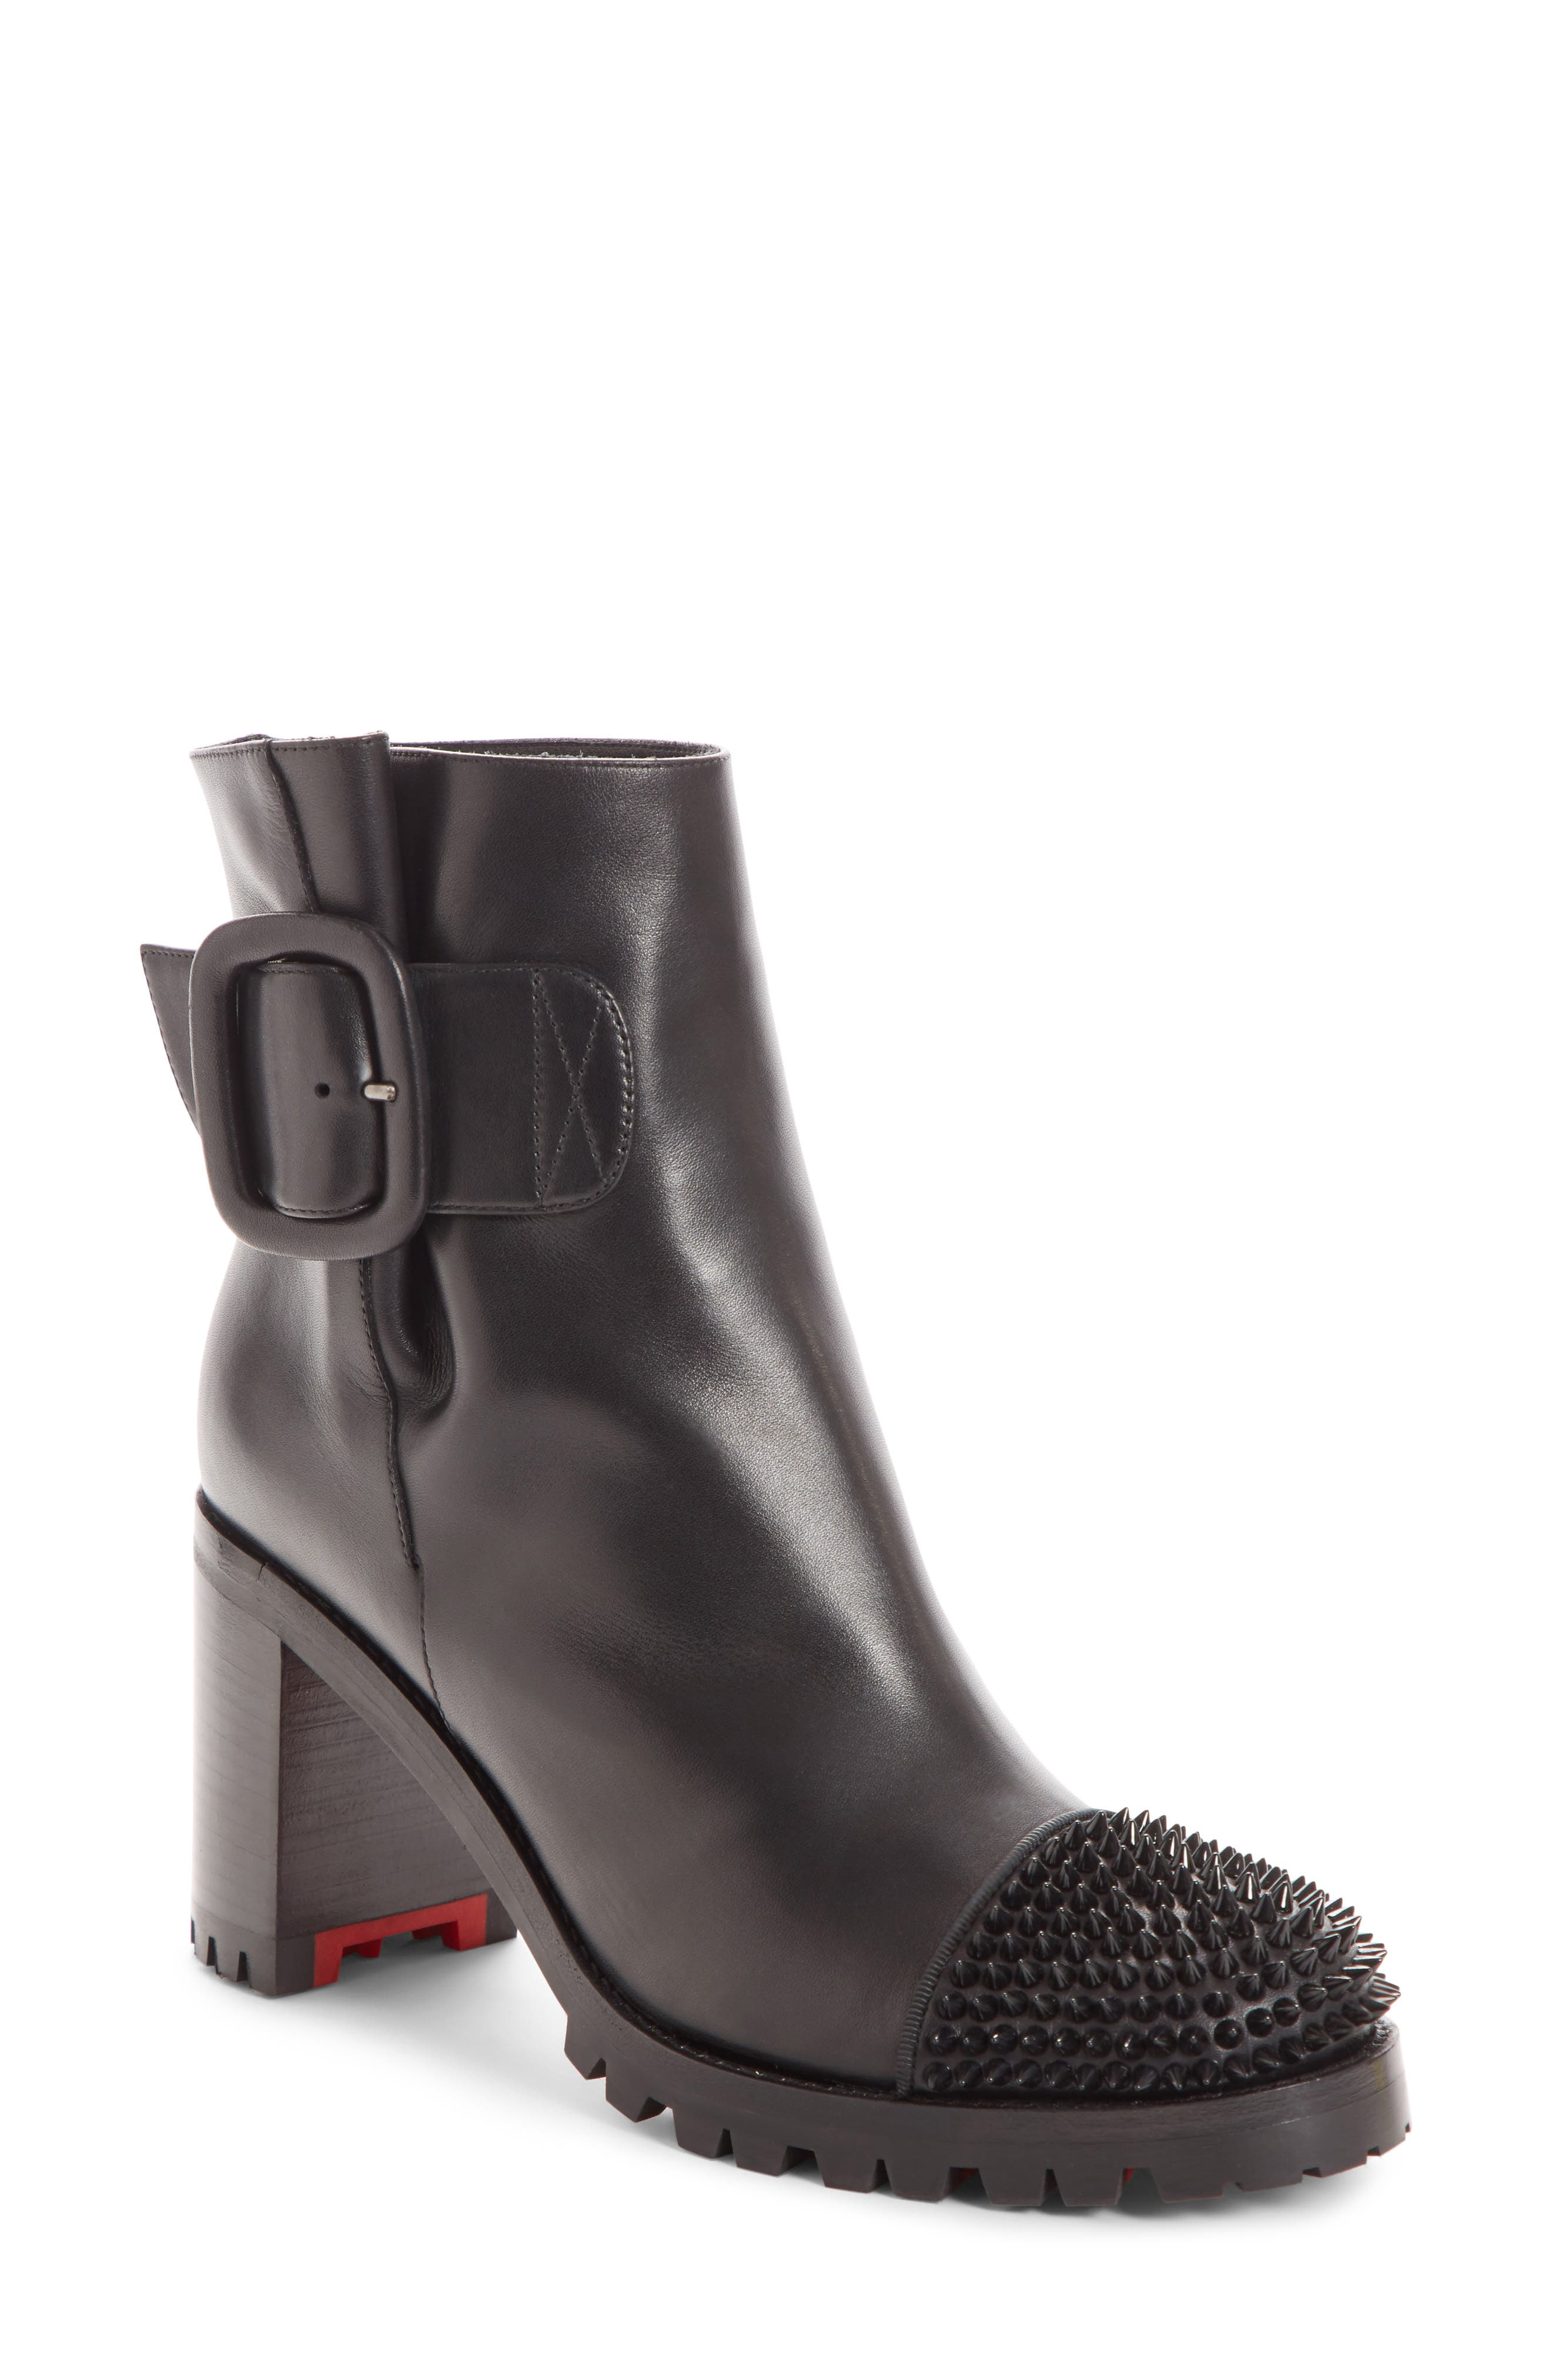 OLIVIA SPIKED BOOT